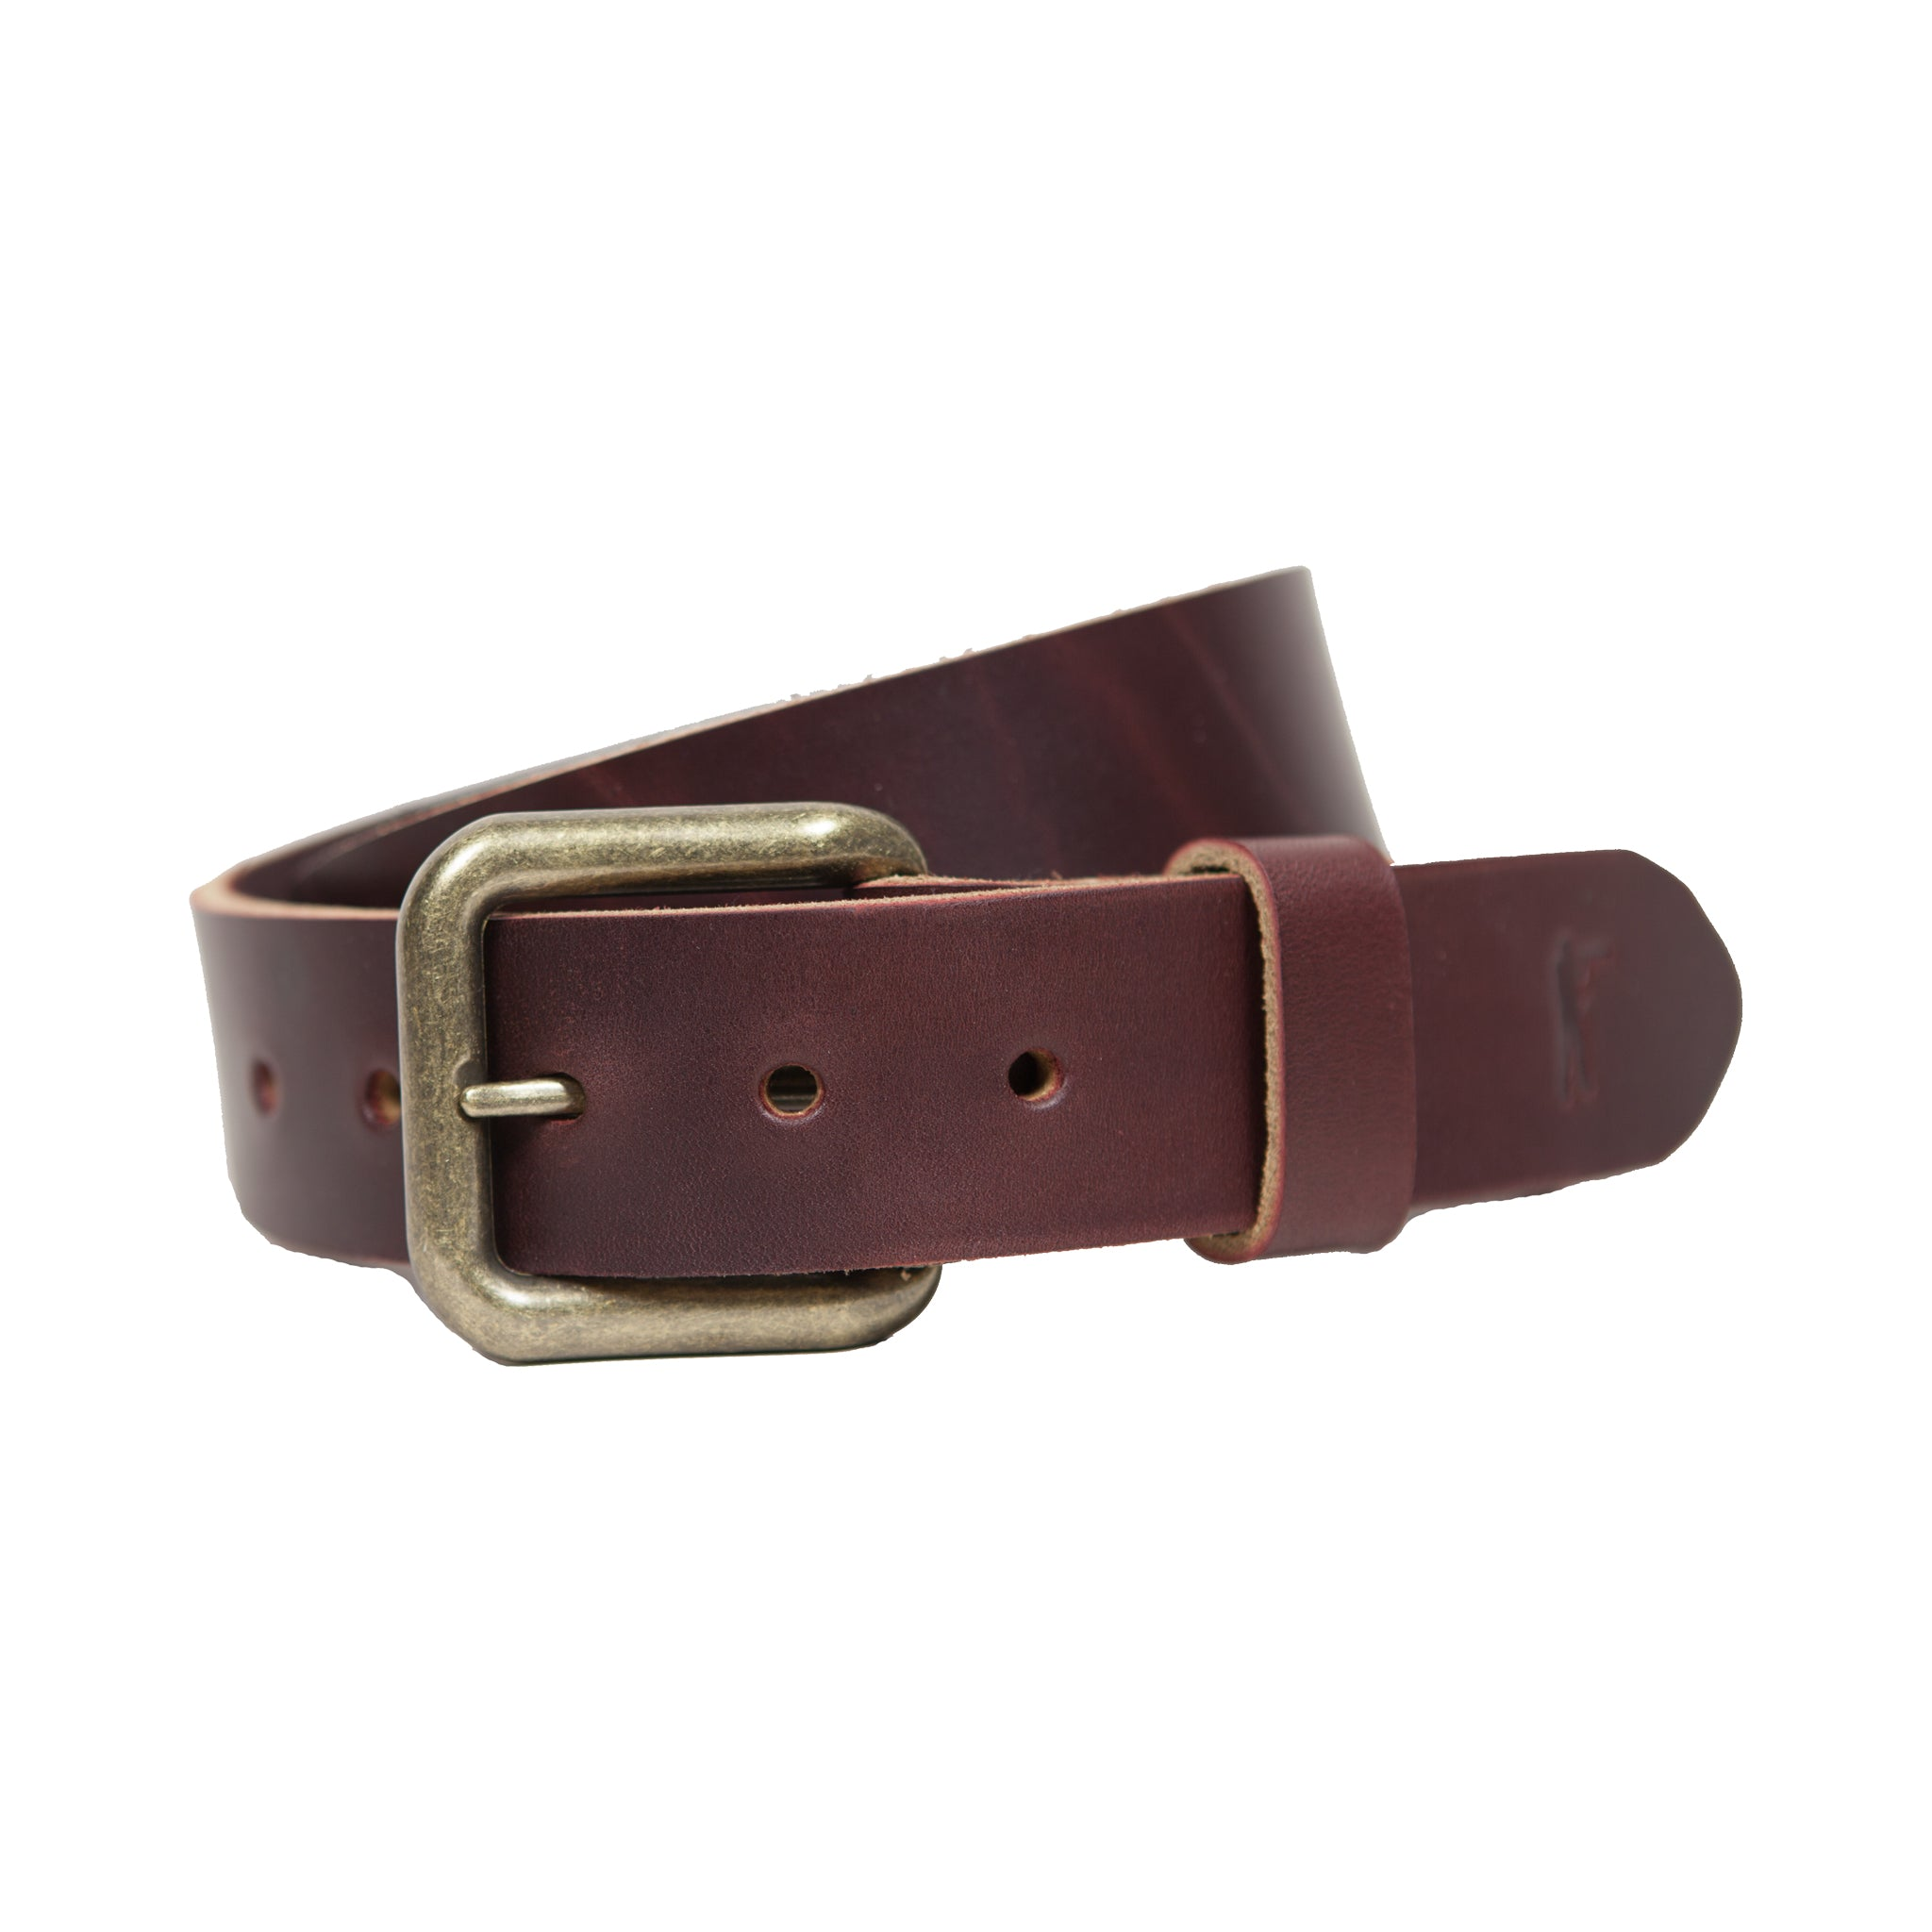 The Last Belt You'll Ever Buy by Ball and Buck | Latigo